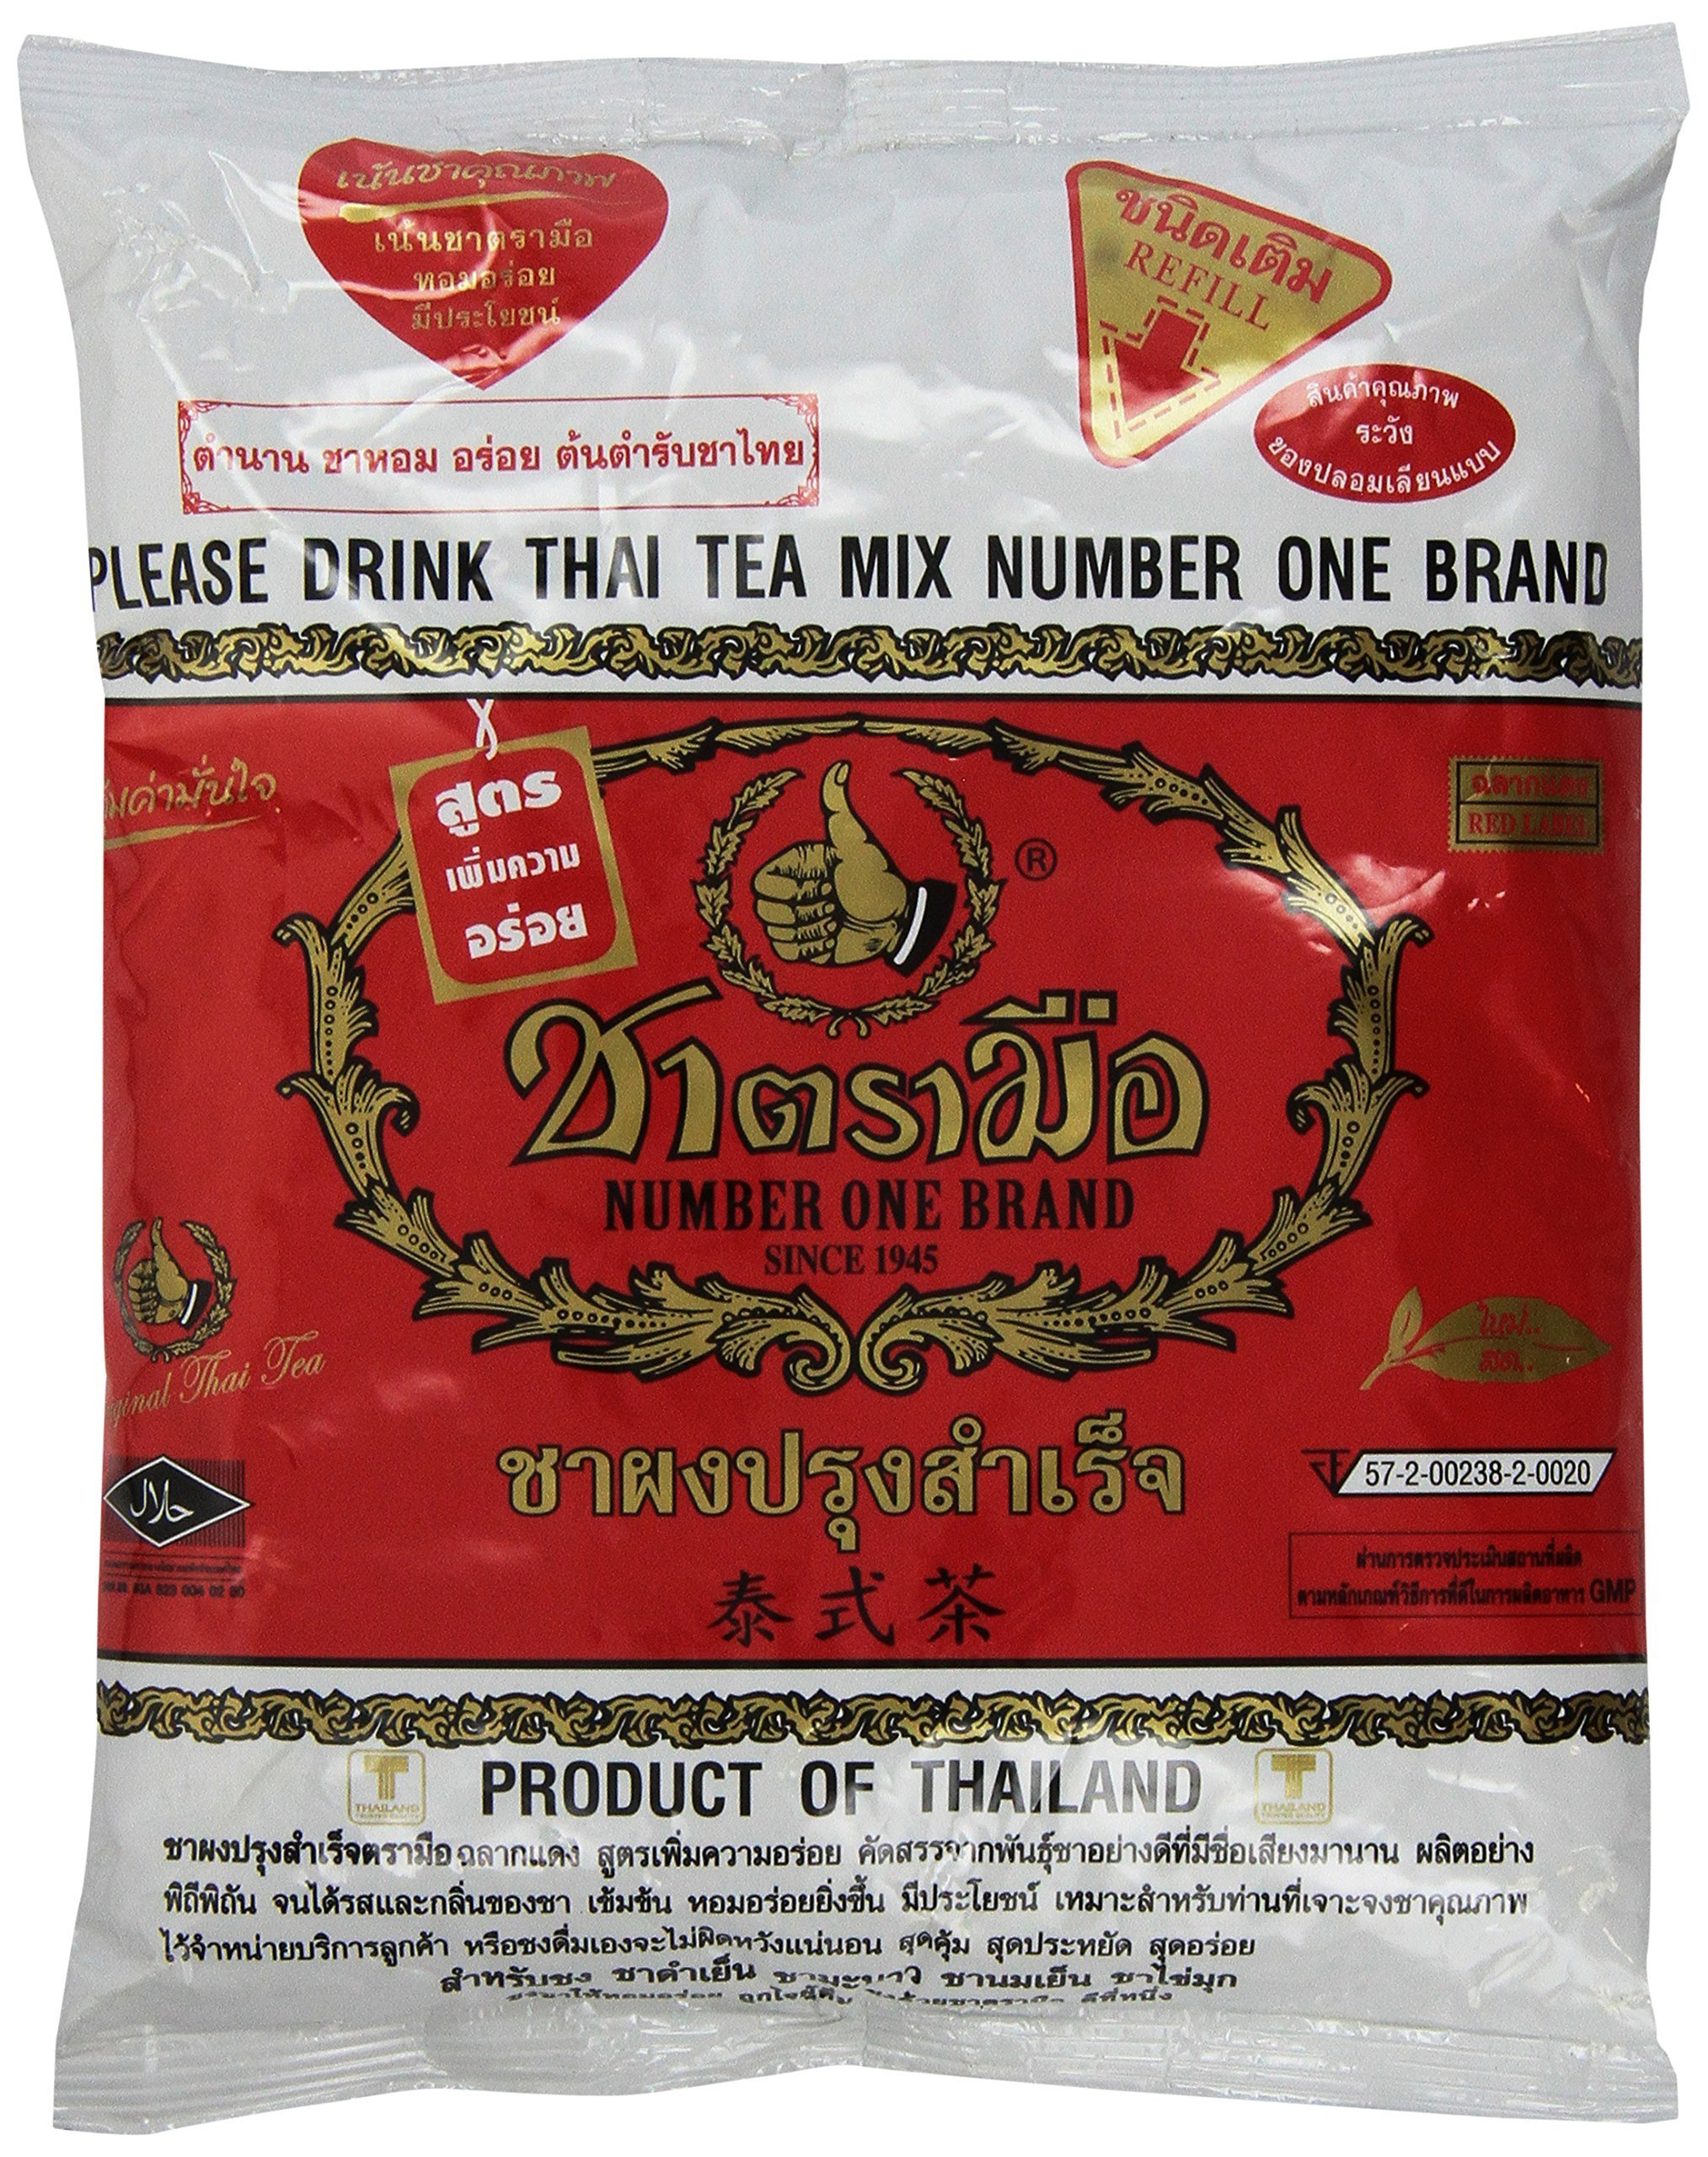 Number One The Original Thai Iced Tea Mix - Number One Brand Imported From Thailand - Great for Restaurants That Want to Serve Authentic and Thai Iced Teas, 400g Bag